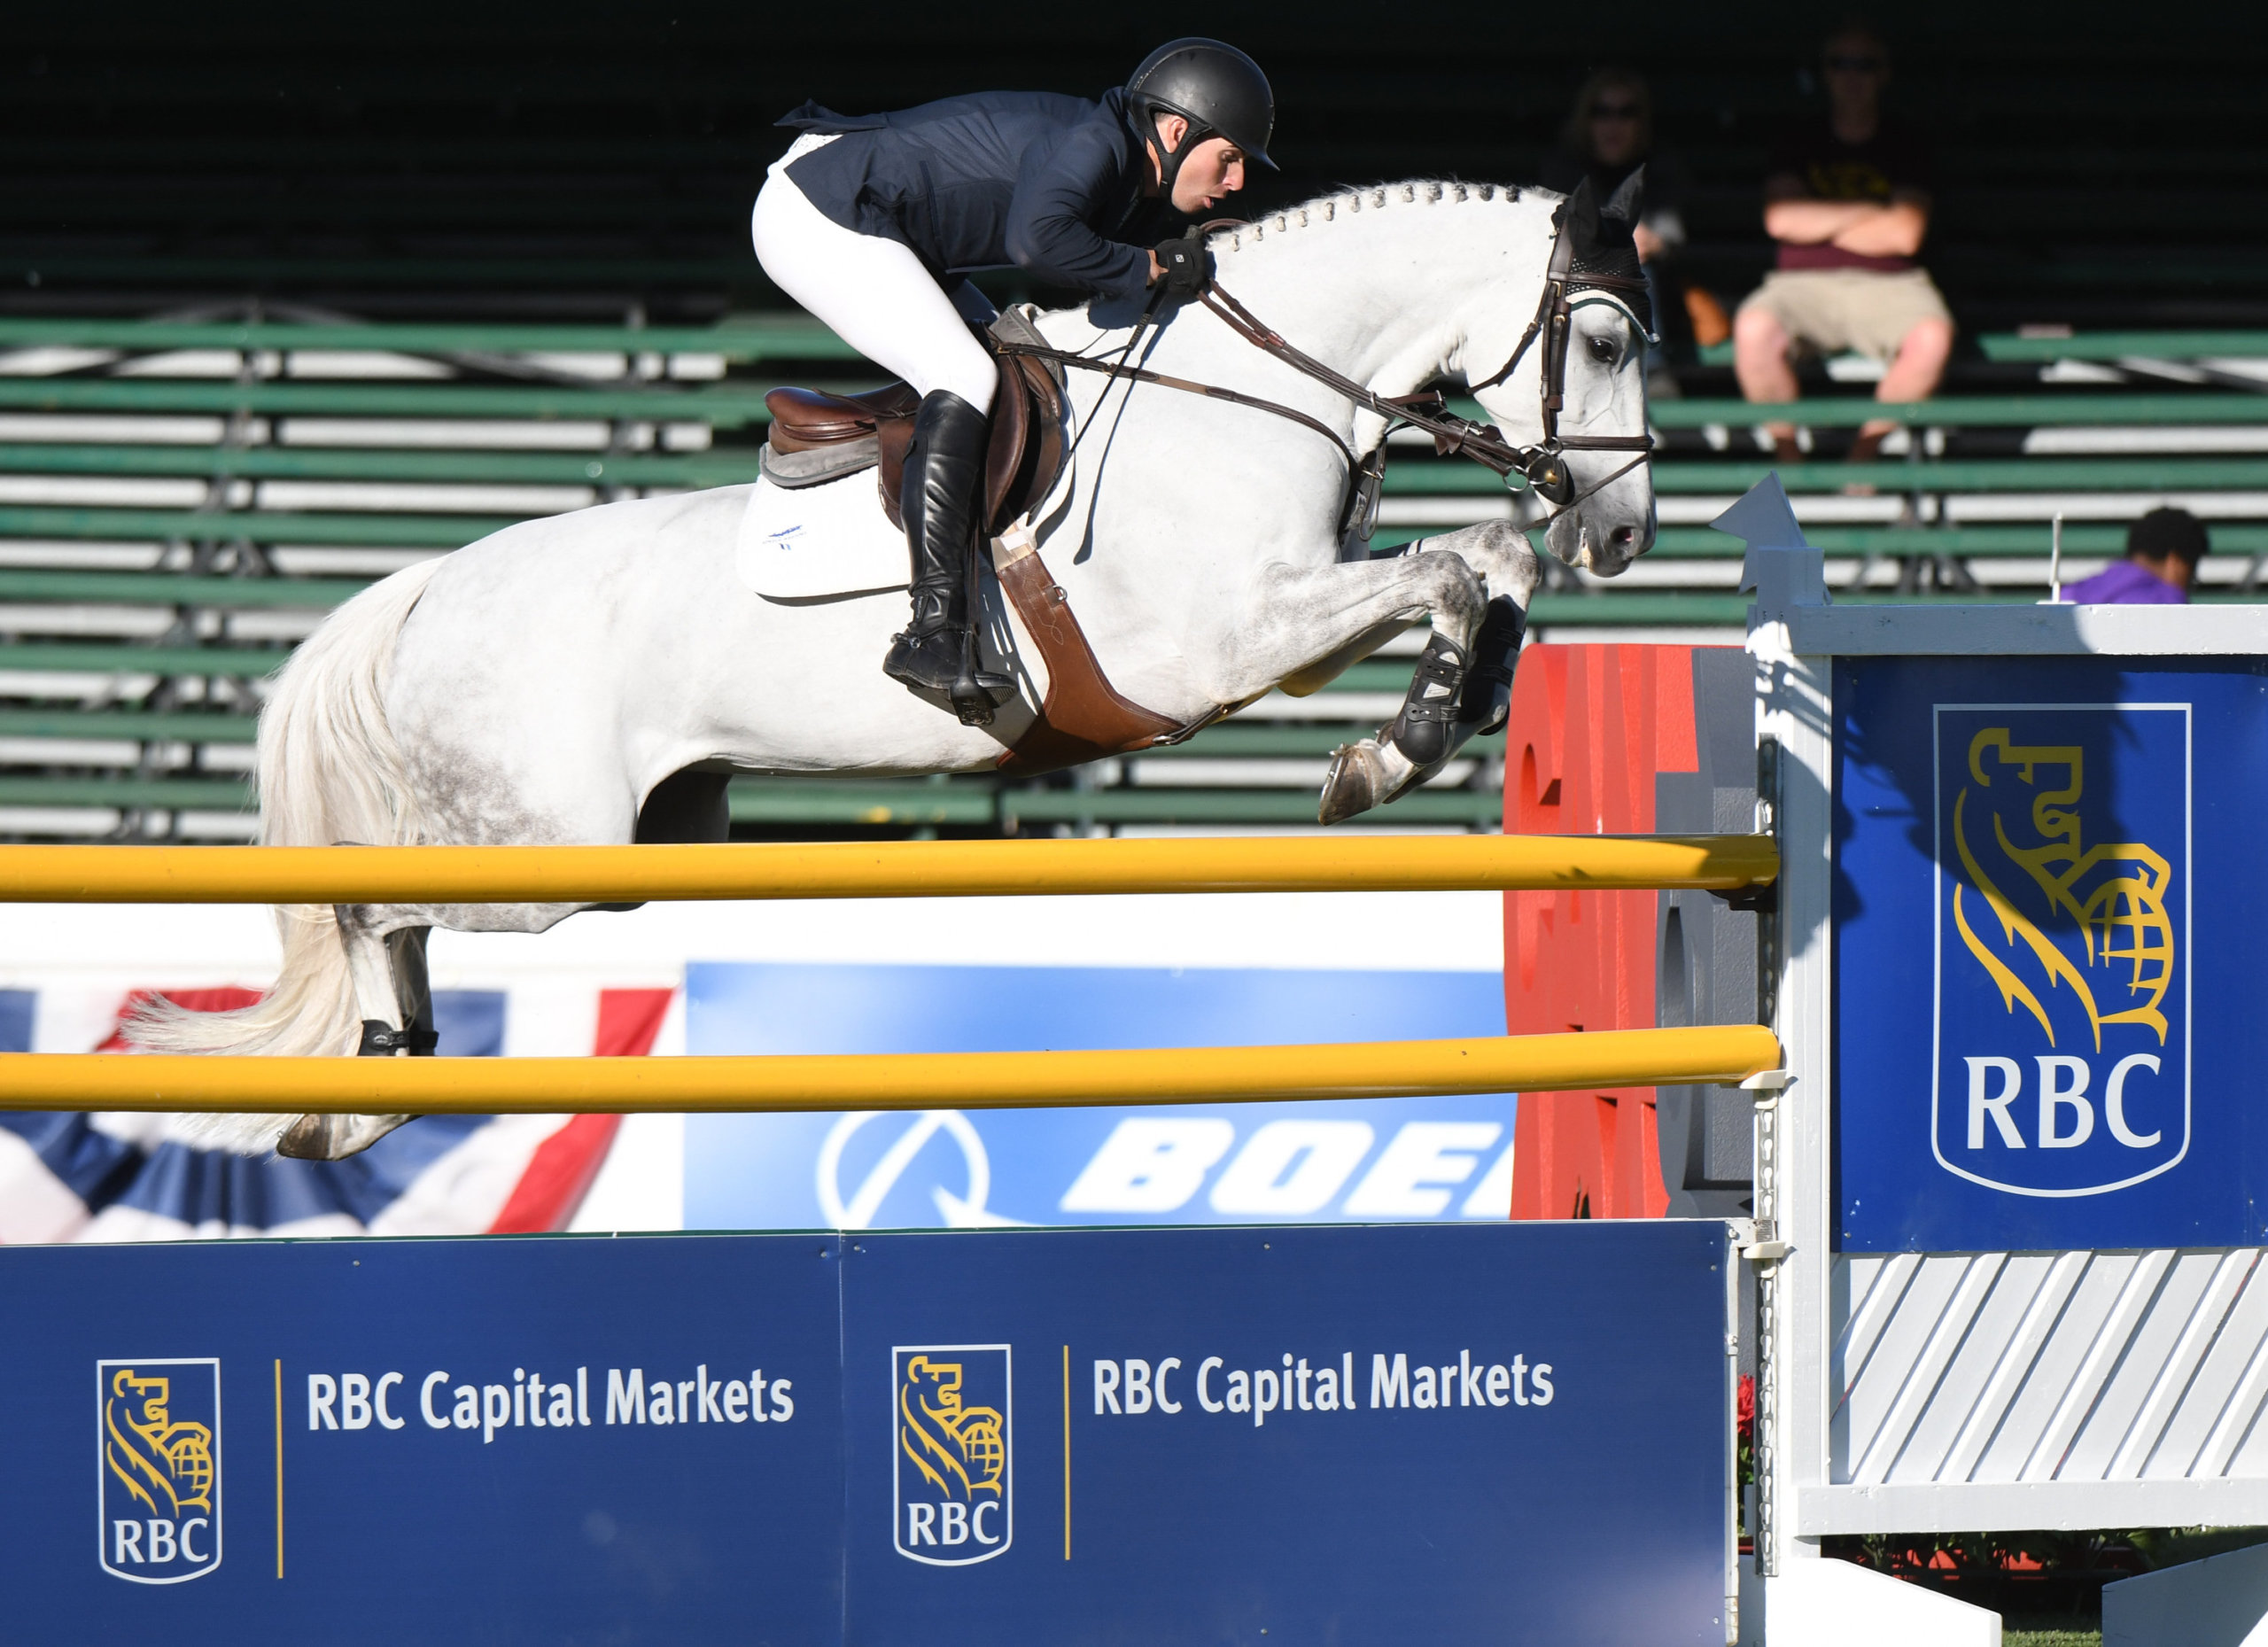 Thumbnail for Chris Surbey Brings Home the RBC Capital Markets Cup